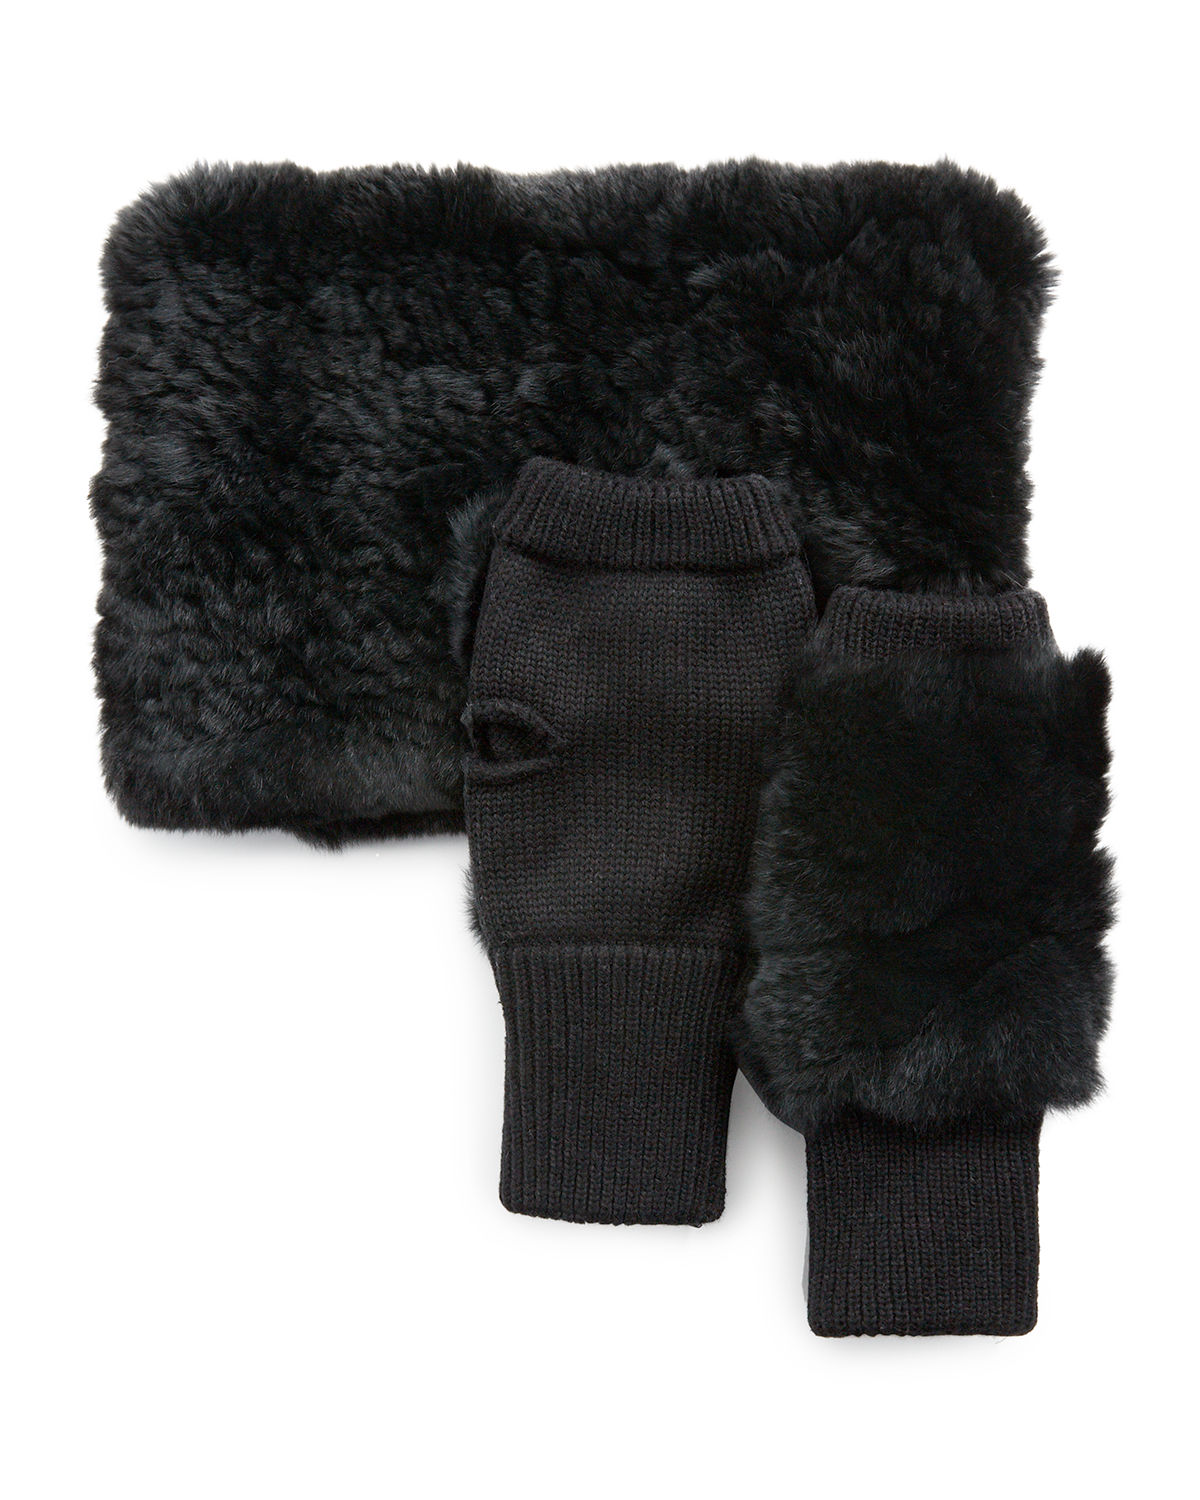 Jocelyn Accessories FUR COWL SCARF & MITTEN SET